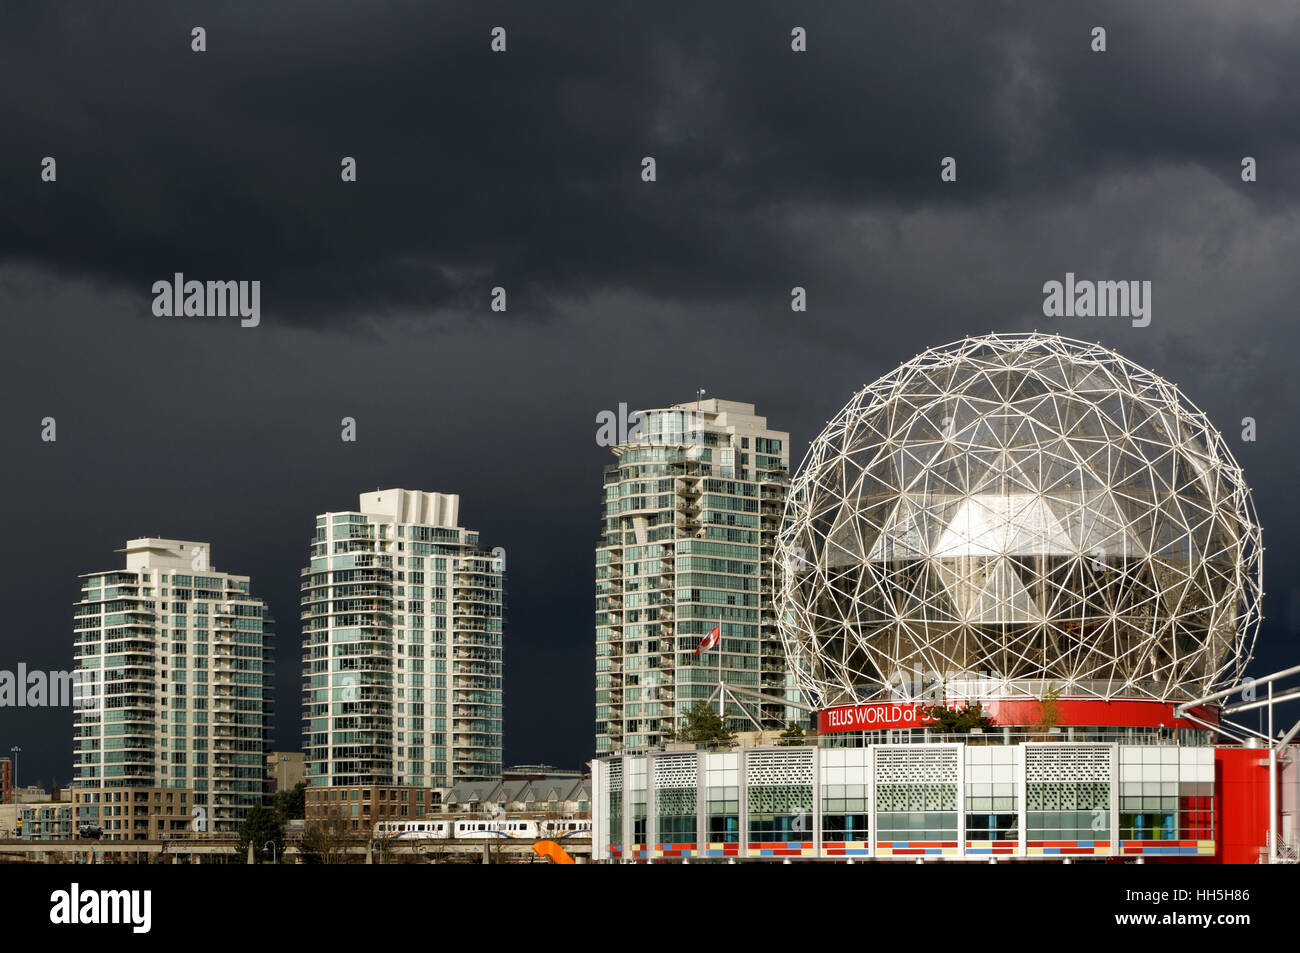 telus-world-of-science-dome-and-condomin